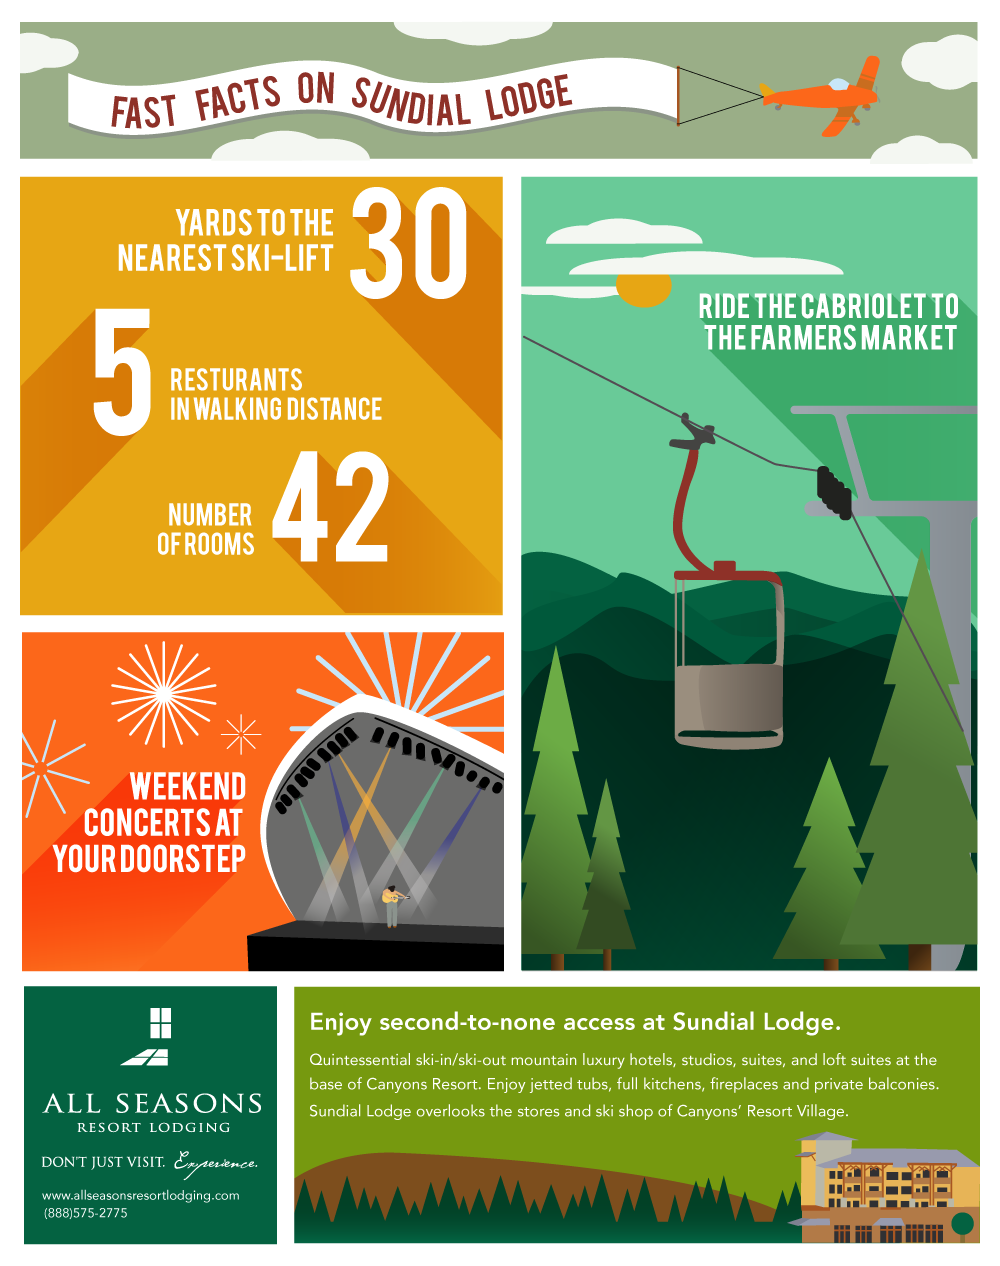 Fast Facts Graphic of Sundial Lodge